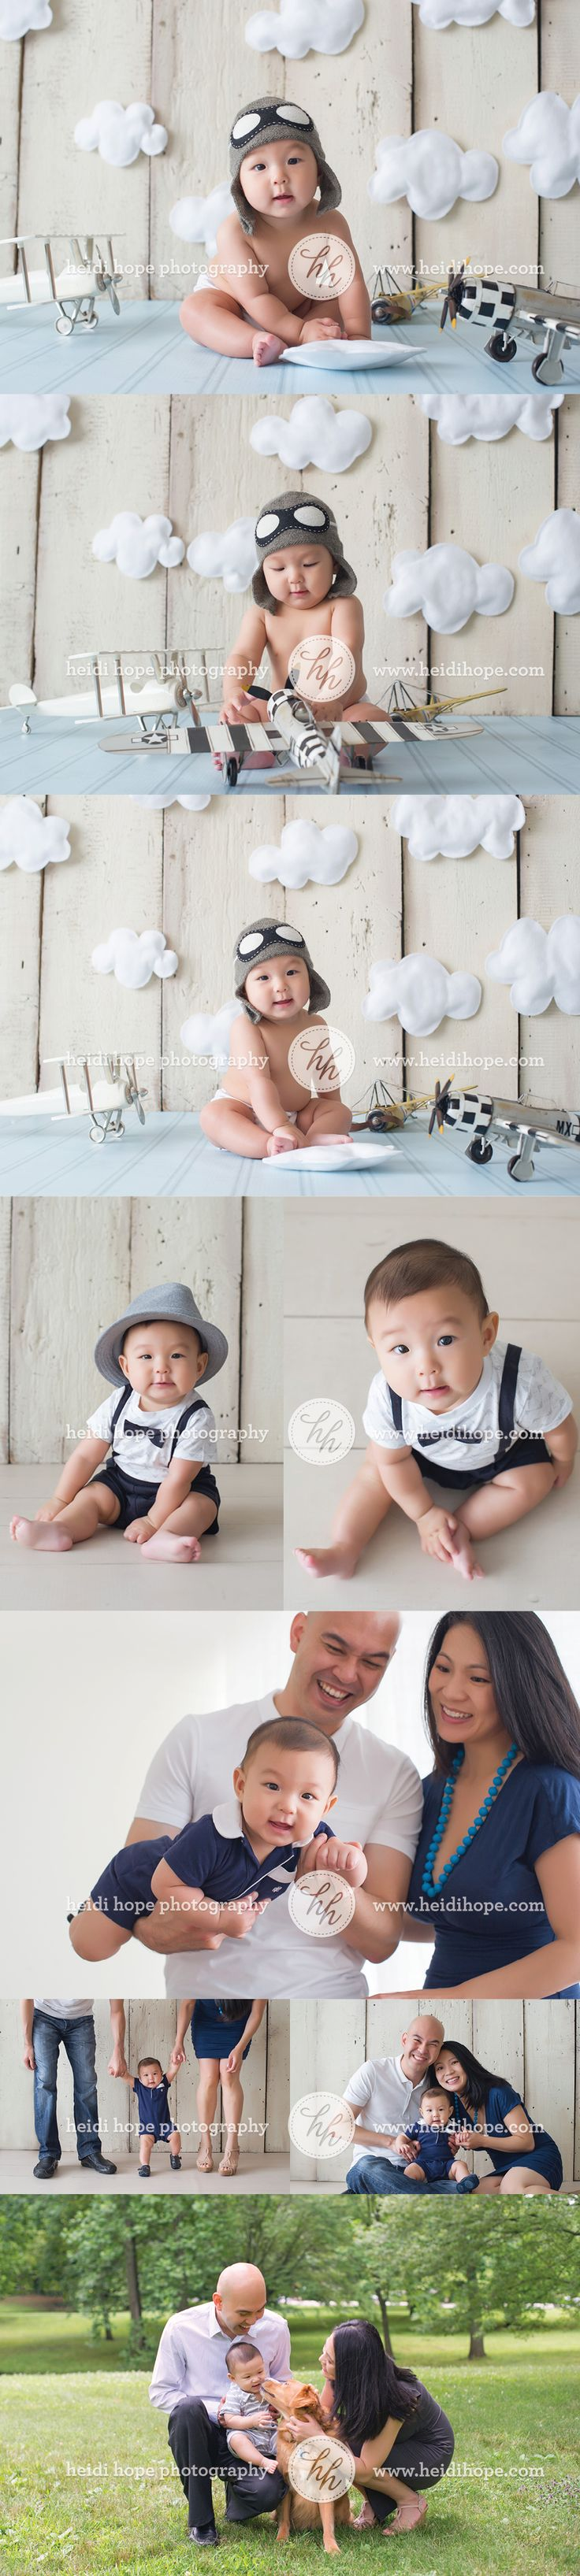 Baby aviator photo set - I know you'd love this for our baby! :)